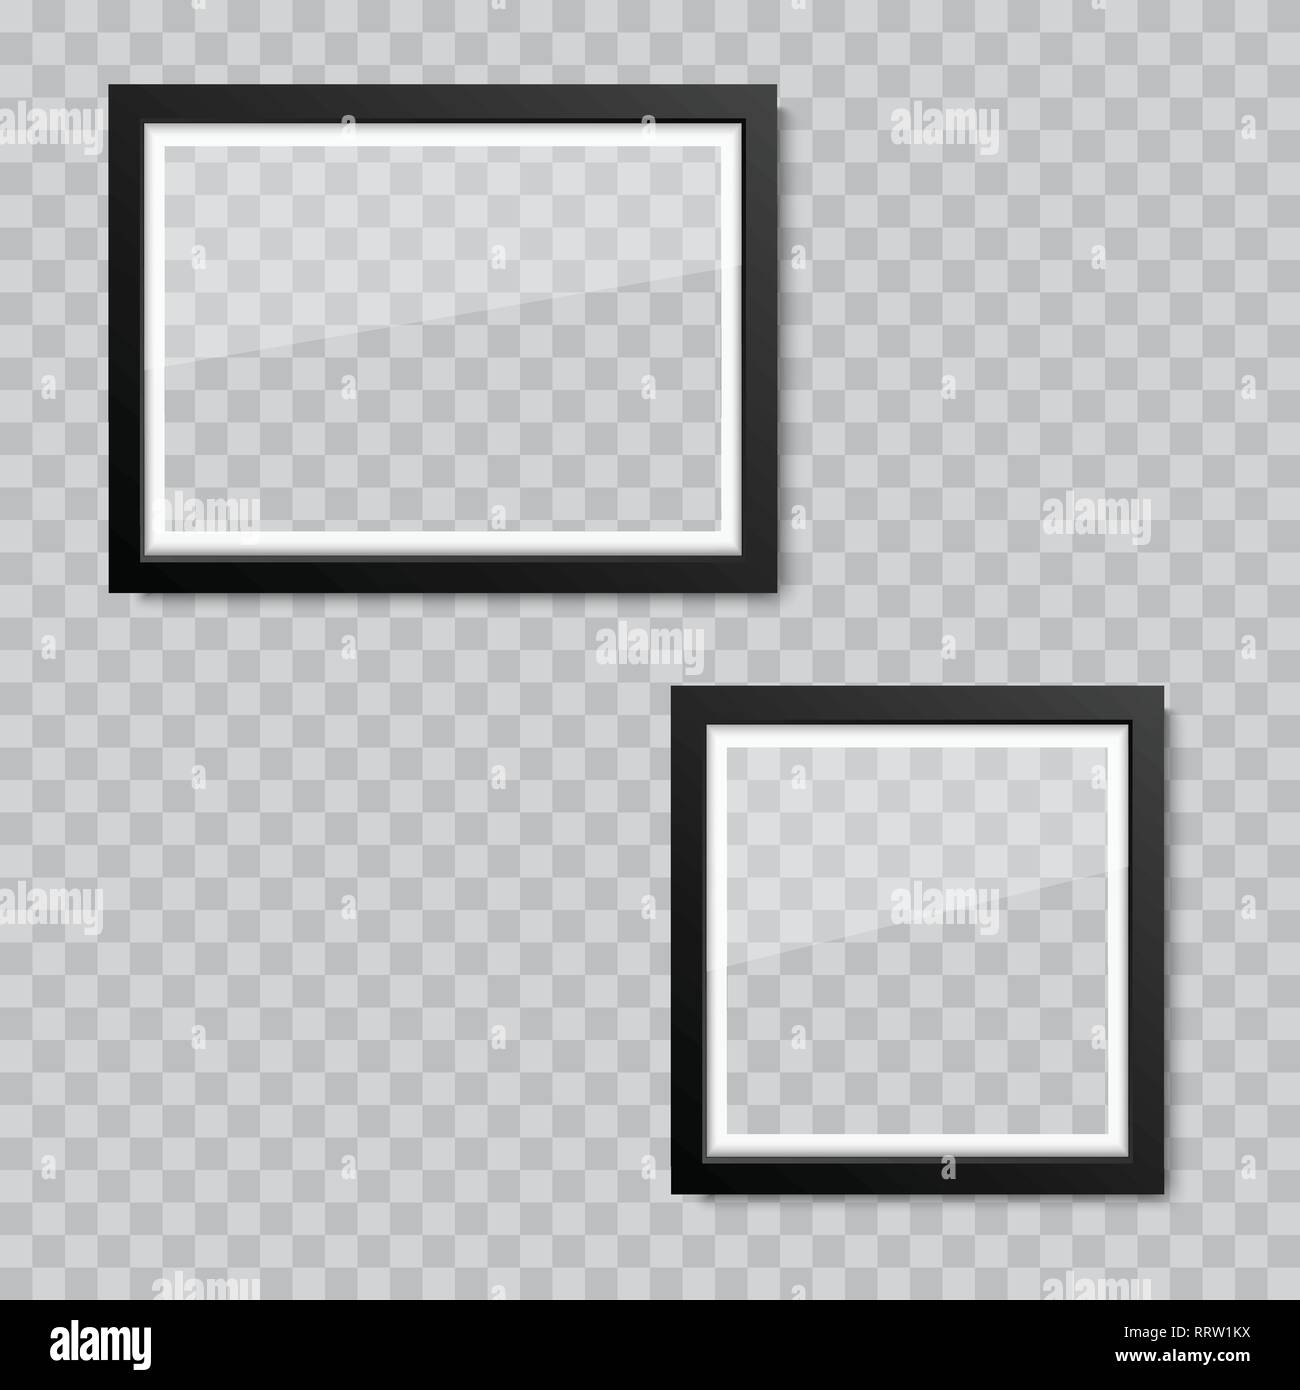 Realistic blank glass picture or photograph frame  Vector